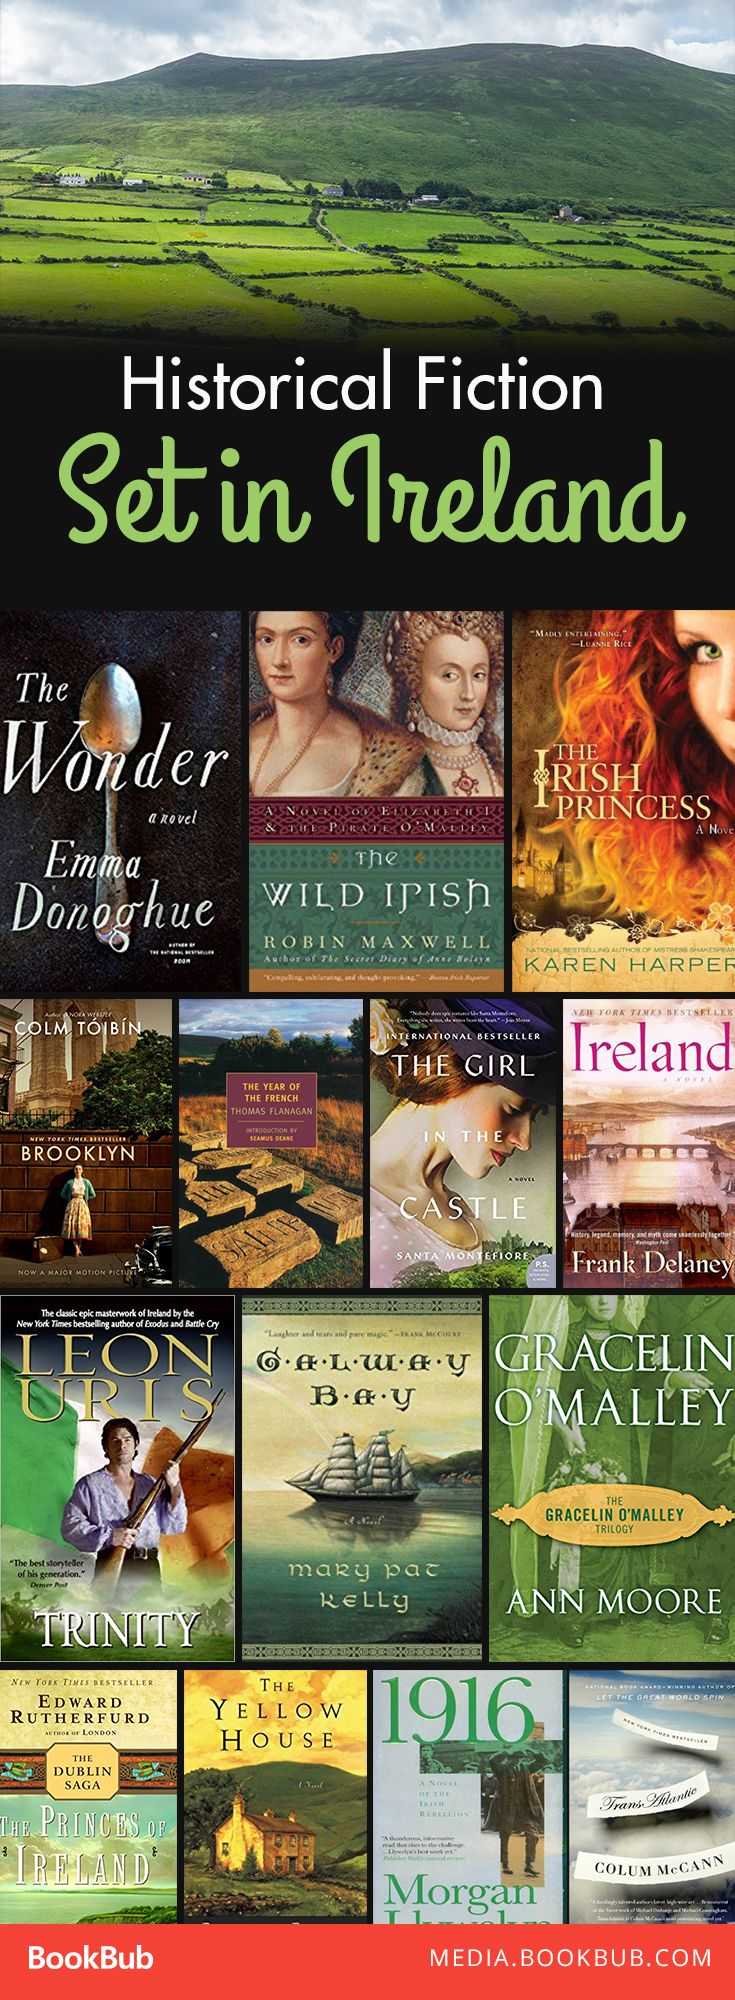 14 historical fiction books set in Ireland. These novels are great for St. Patrick's Day or all year round!